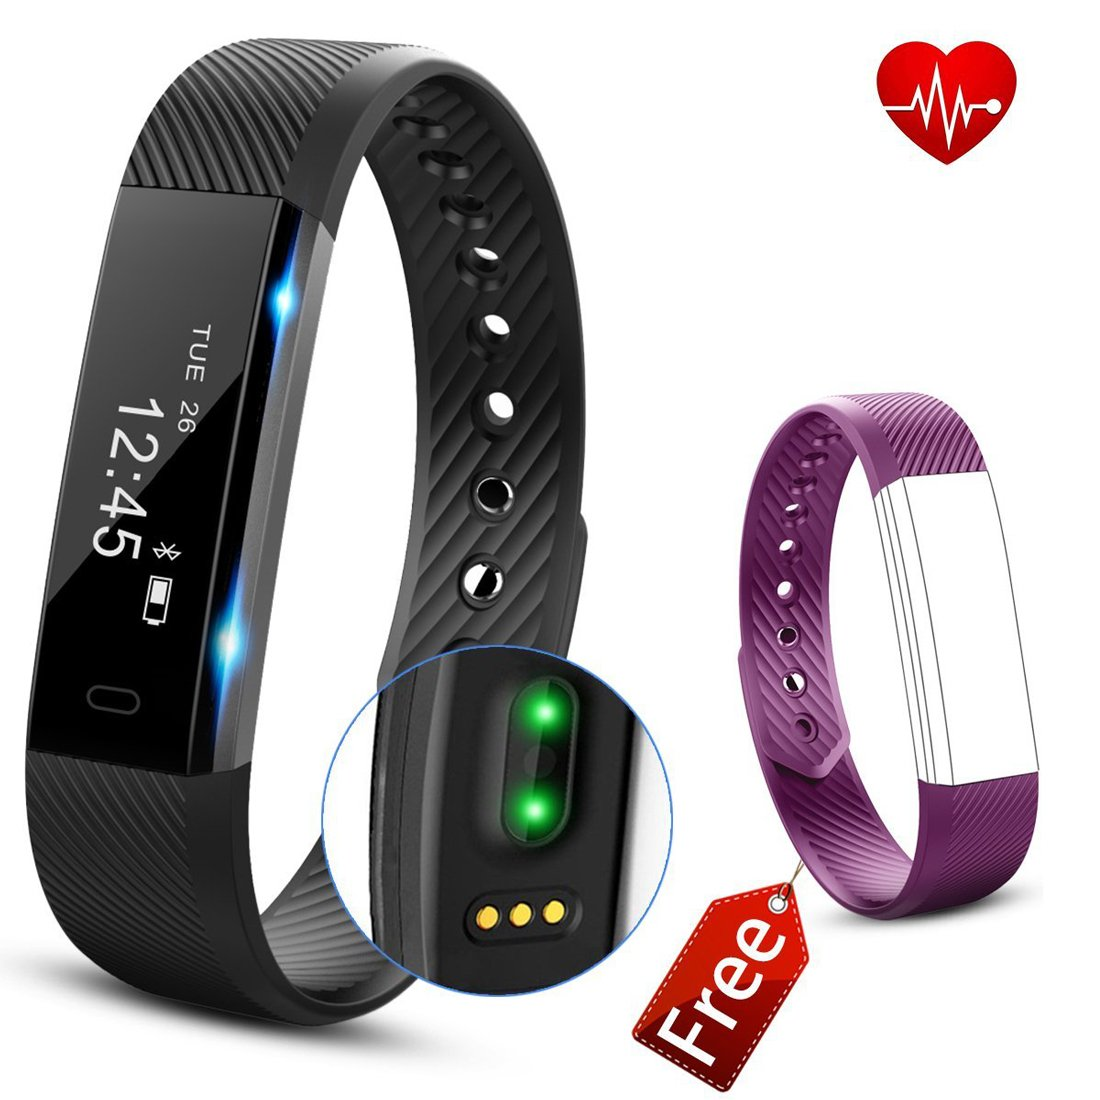 Fitness tracker HR、Angelakerry Fitness Tracker Watch with Heart Rate Monitor、スリムタッチ画面、Wristbands、ウェアラブル防水活動トラッカー歩数計AndroidとiOSの B074T9FSZ8 Black-Purple